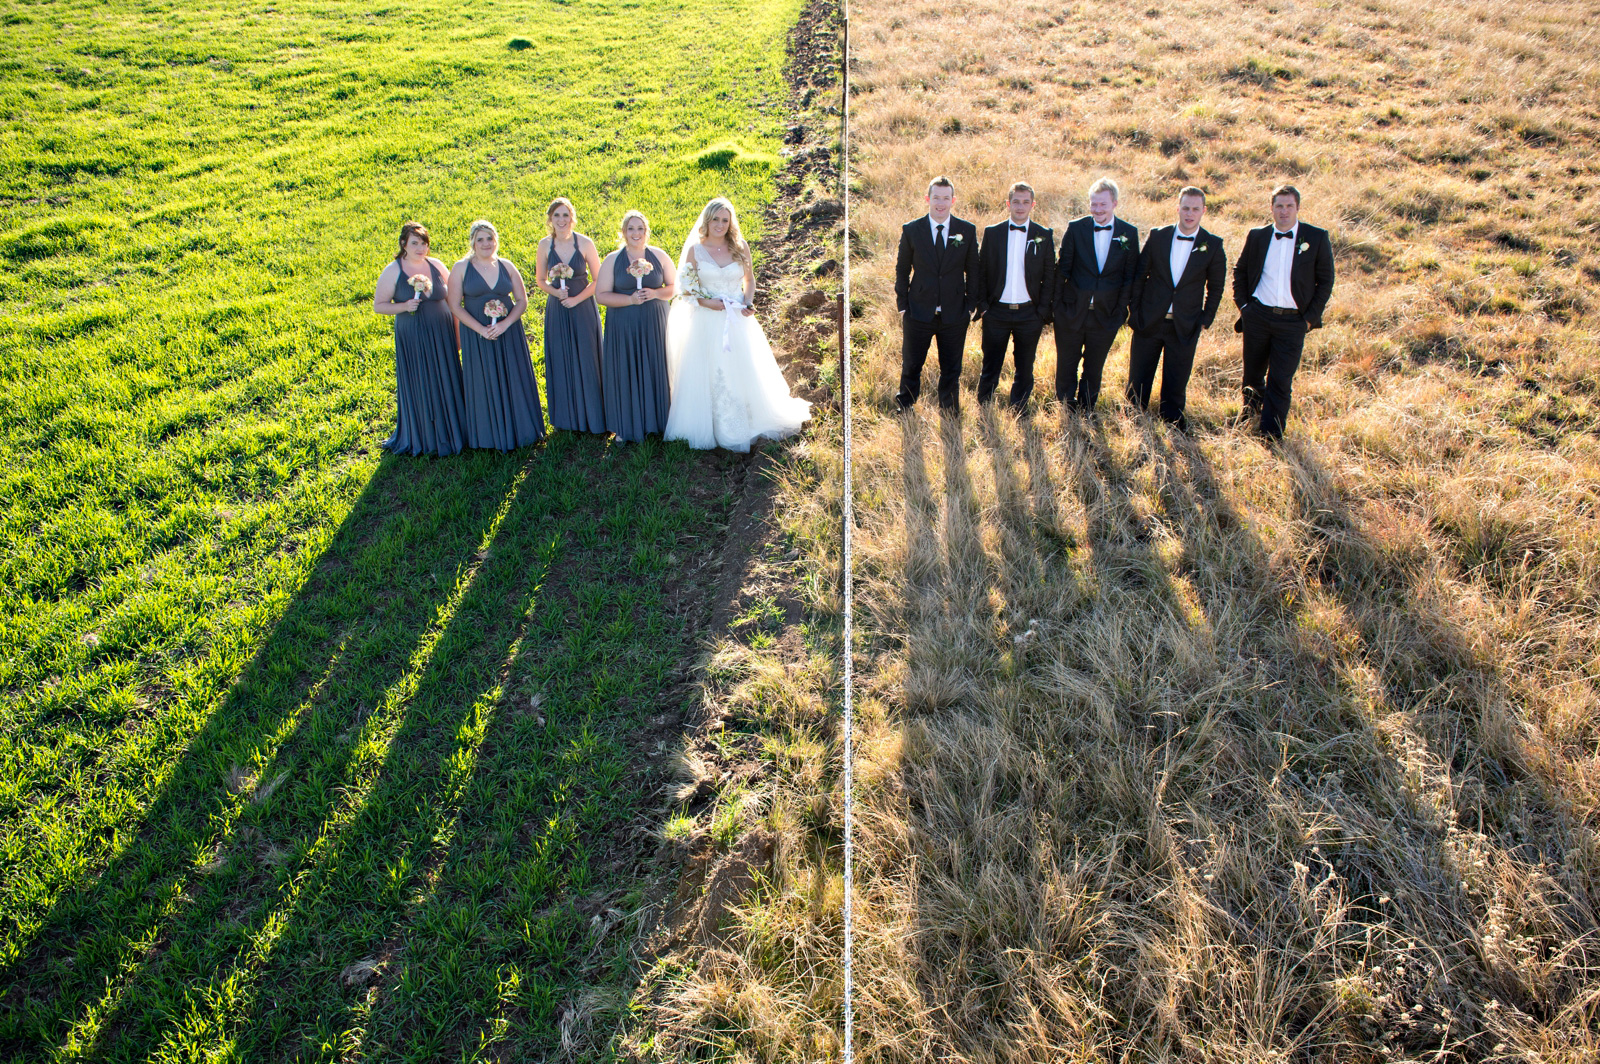 Bridal party in 2 different fields